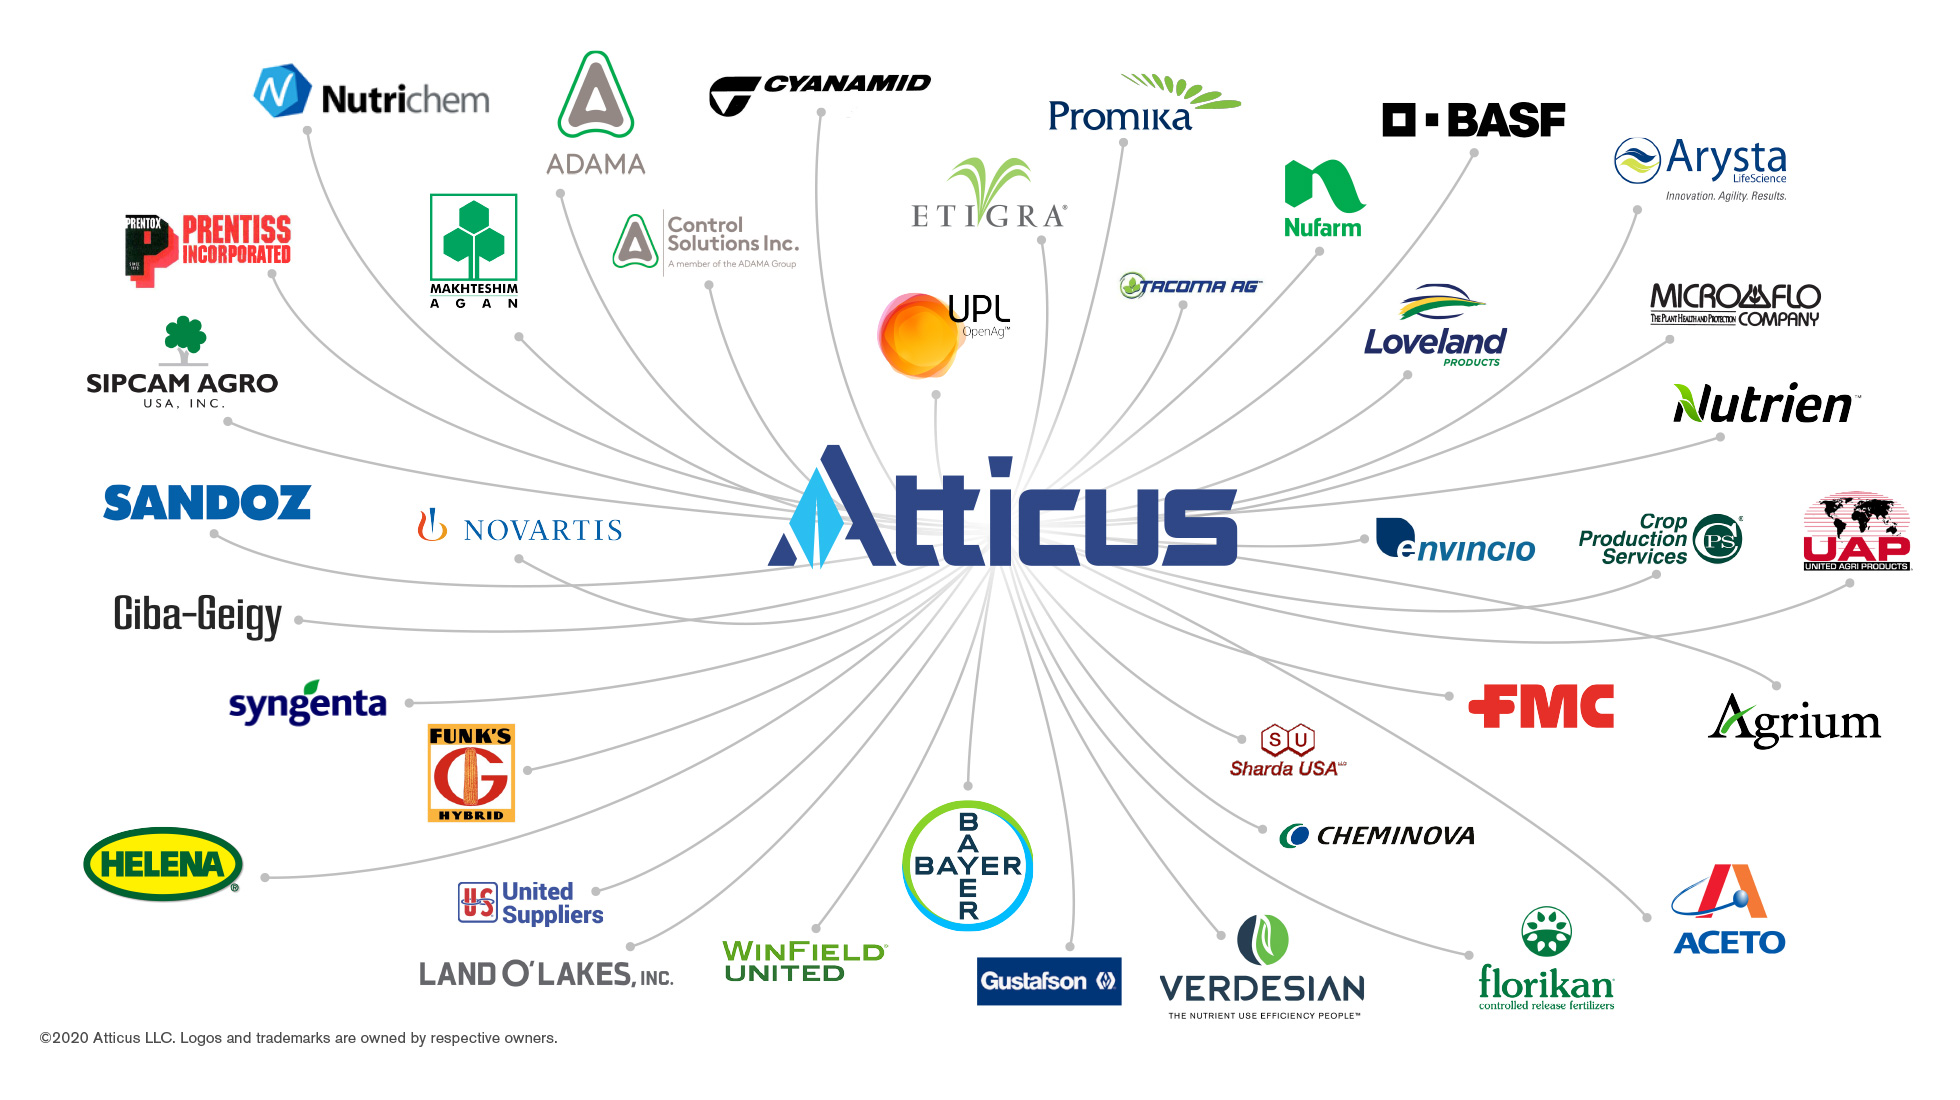 Atticus Advances Structural Alignment and Expands Team of Professionals